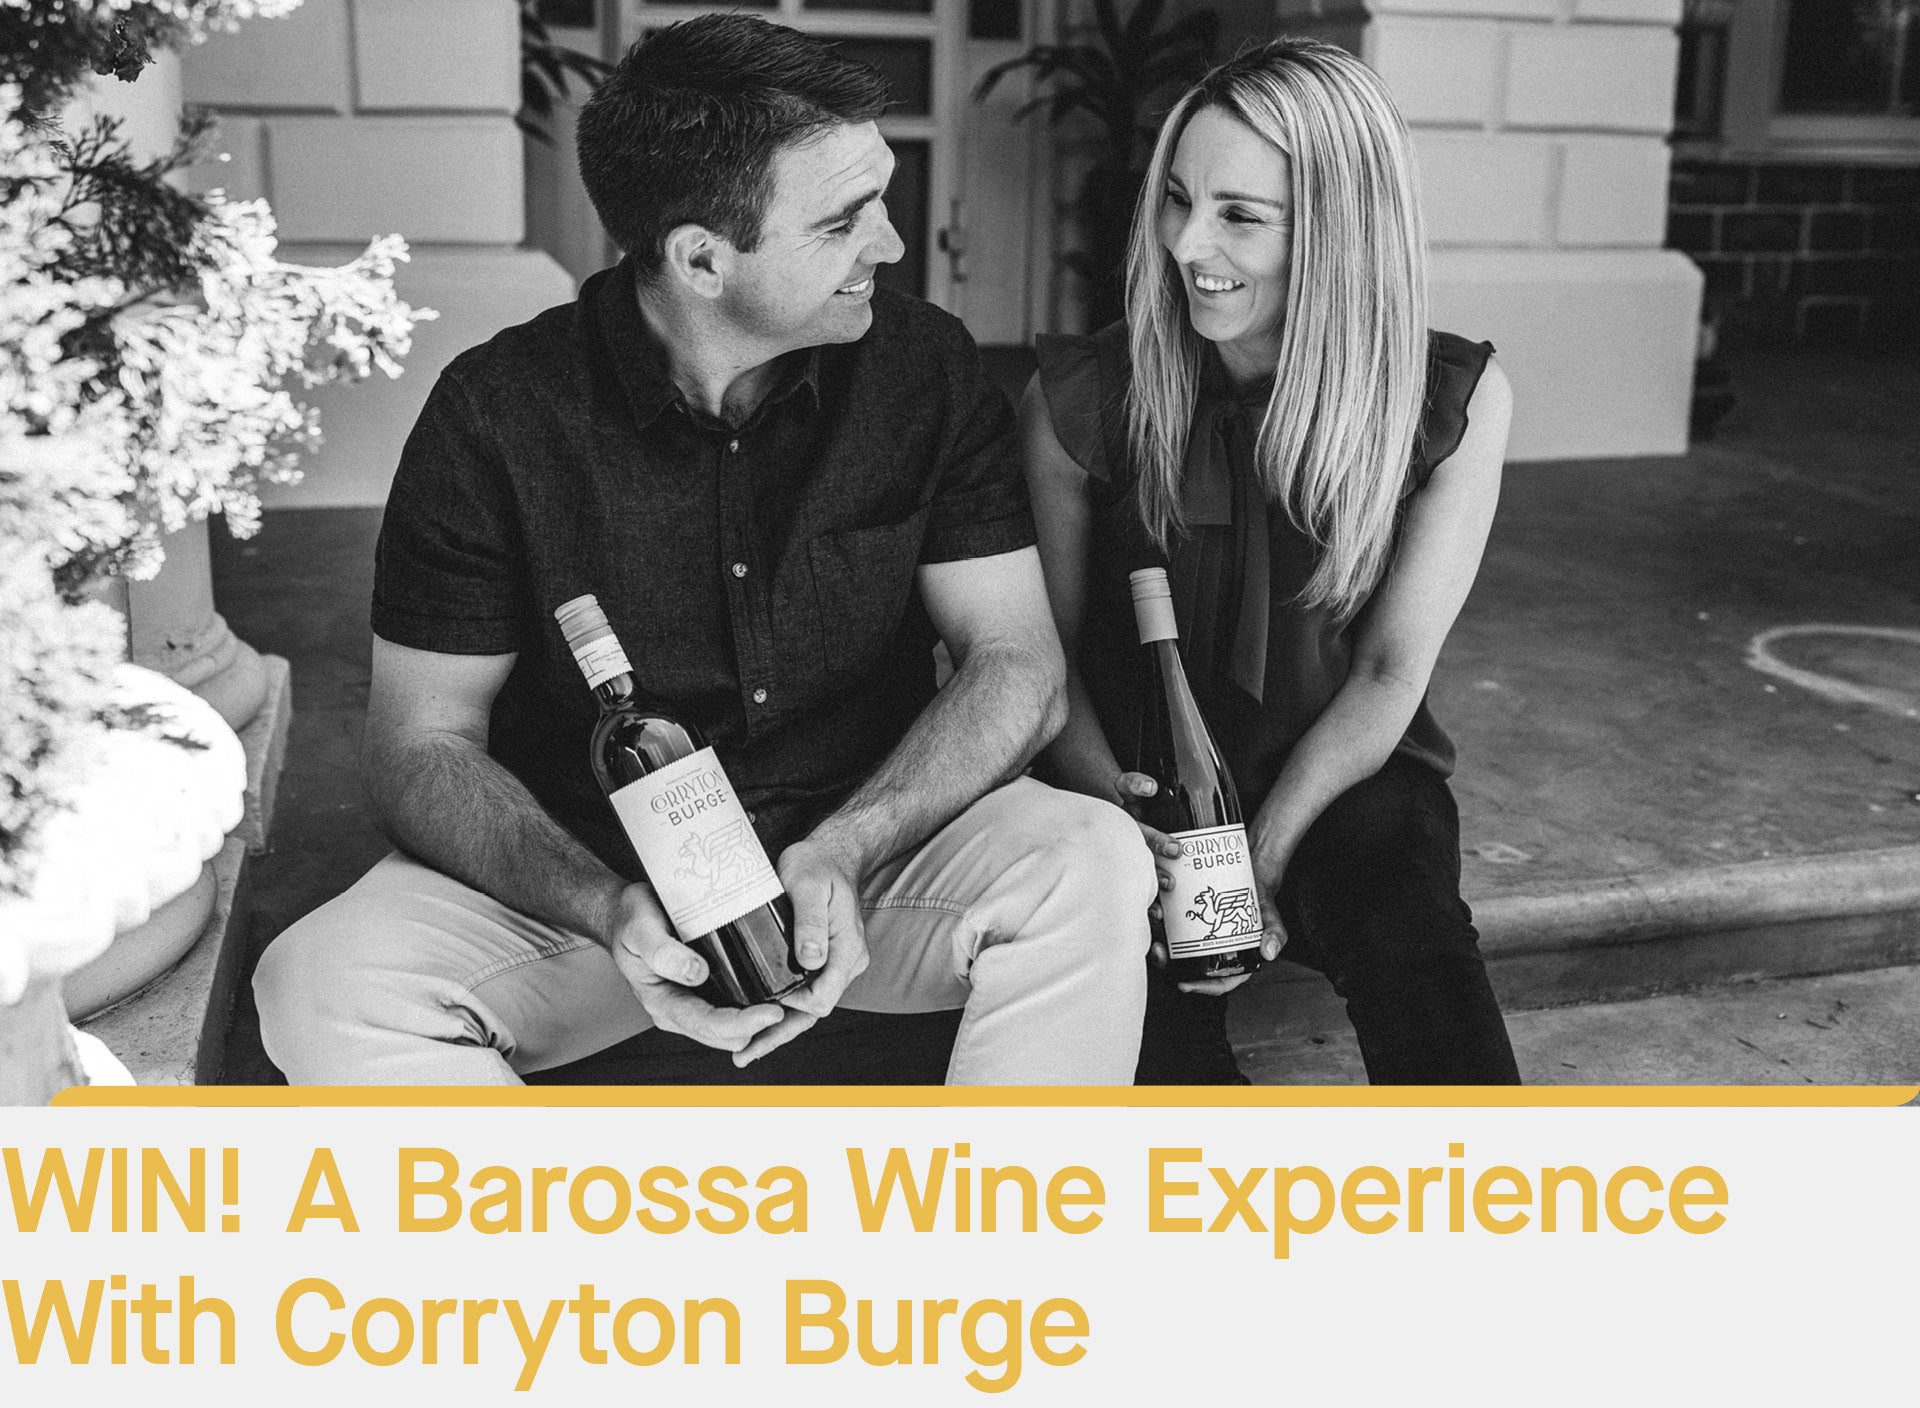 Win A Barossa Wine Experience With Corryton Burge